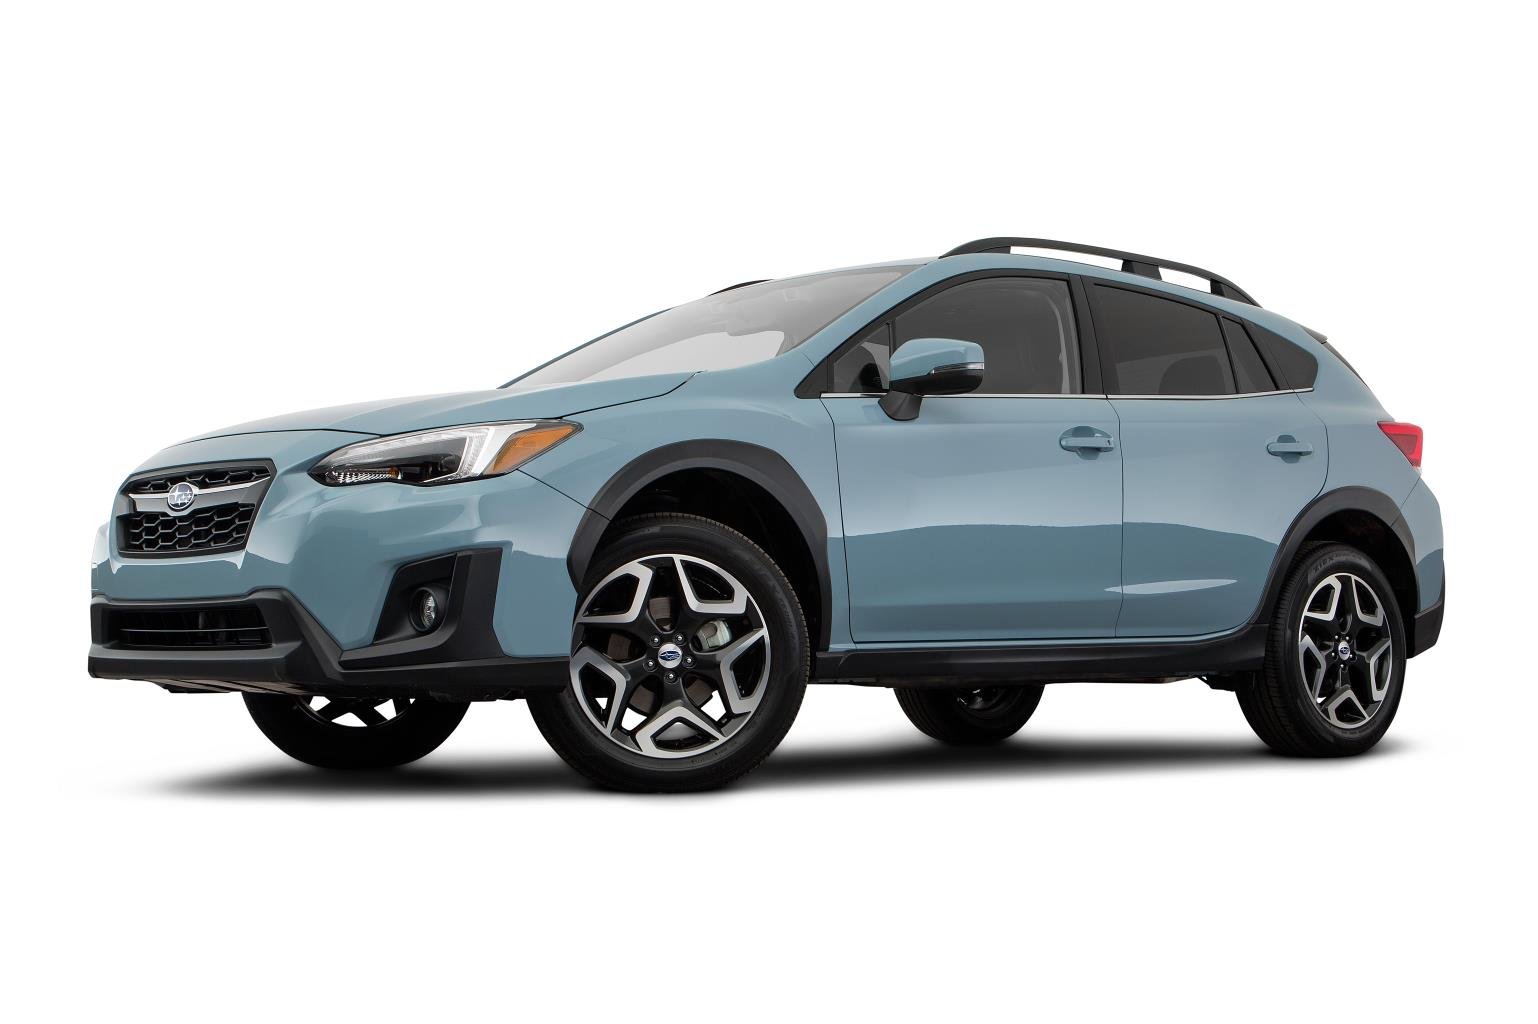 subaru announces pricing on all new 2018 crosstrek models. Black Bedroom Furniture Sets. Home Design Ideas